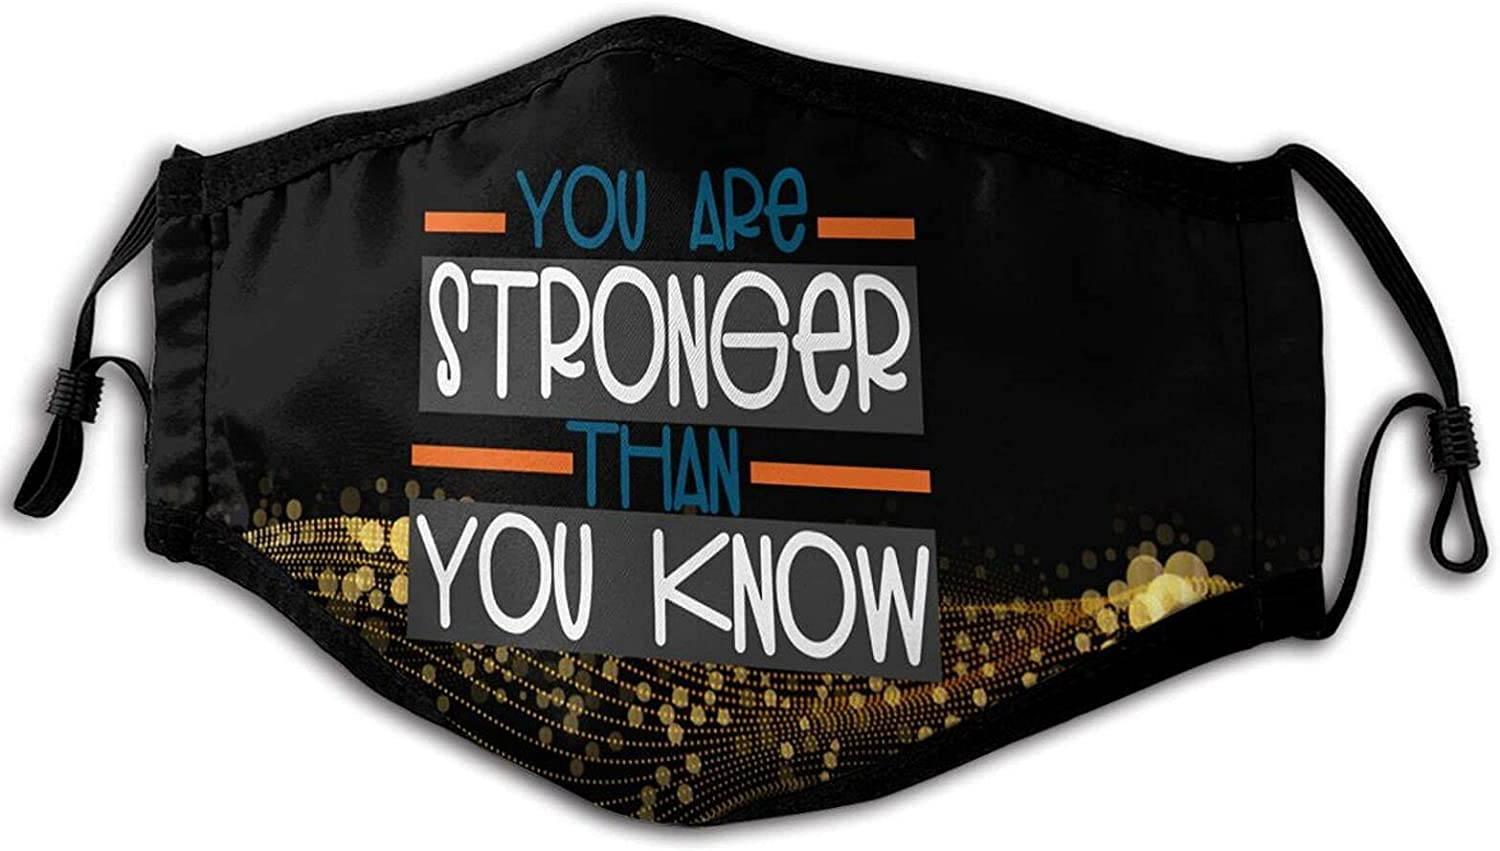 You are Stronger Than You Know Face Mask Dustproof Breathable Protective Bandanas Reusable Adjustable Balaclava